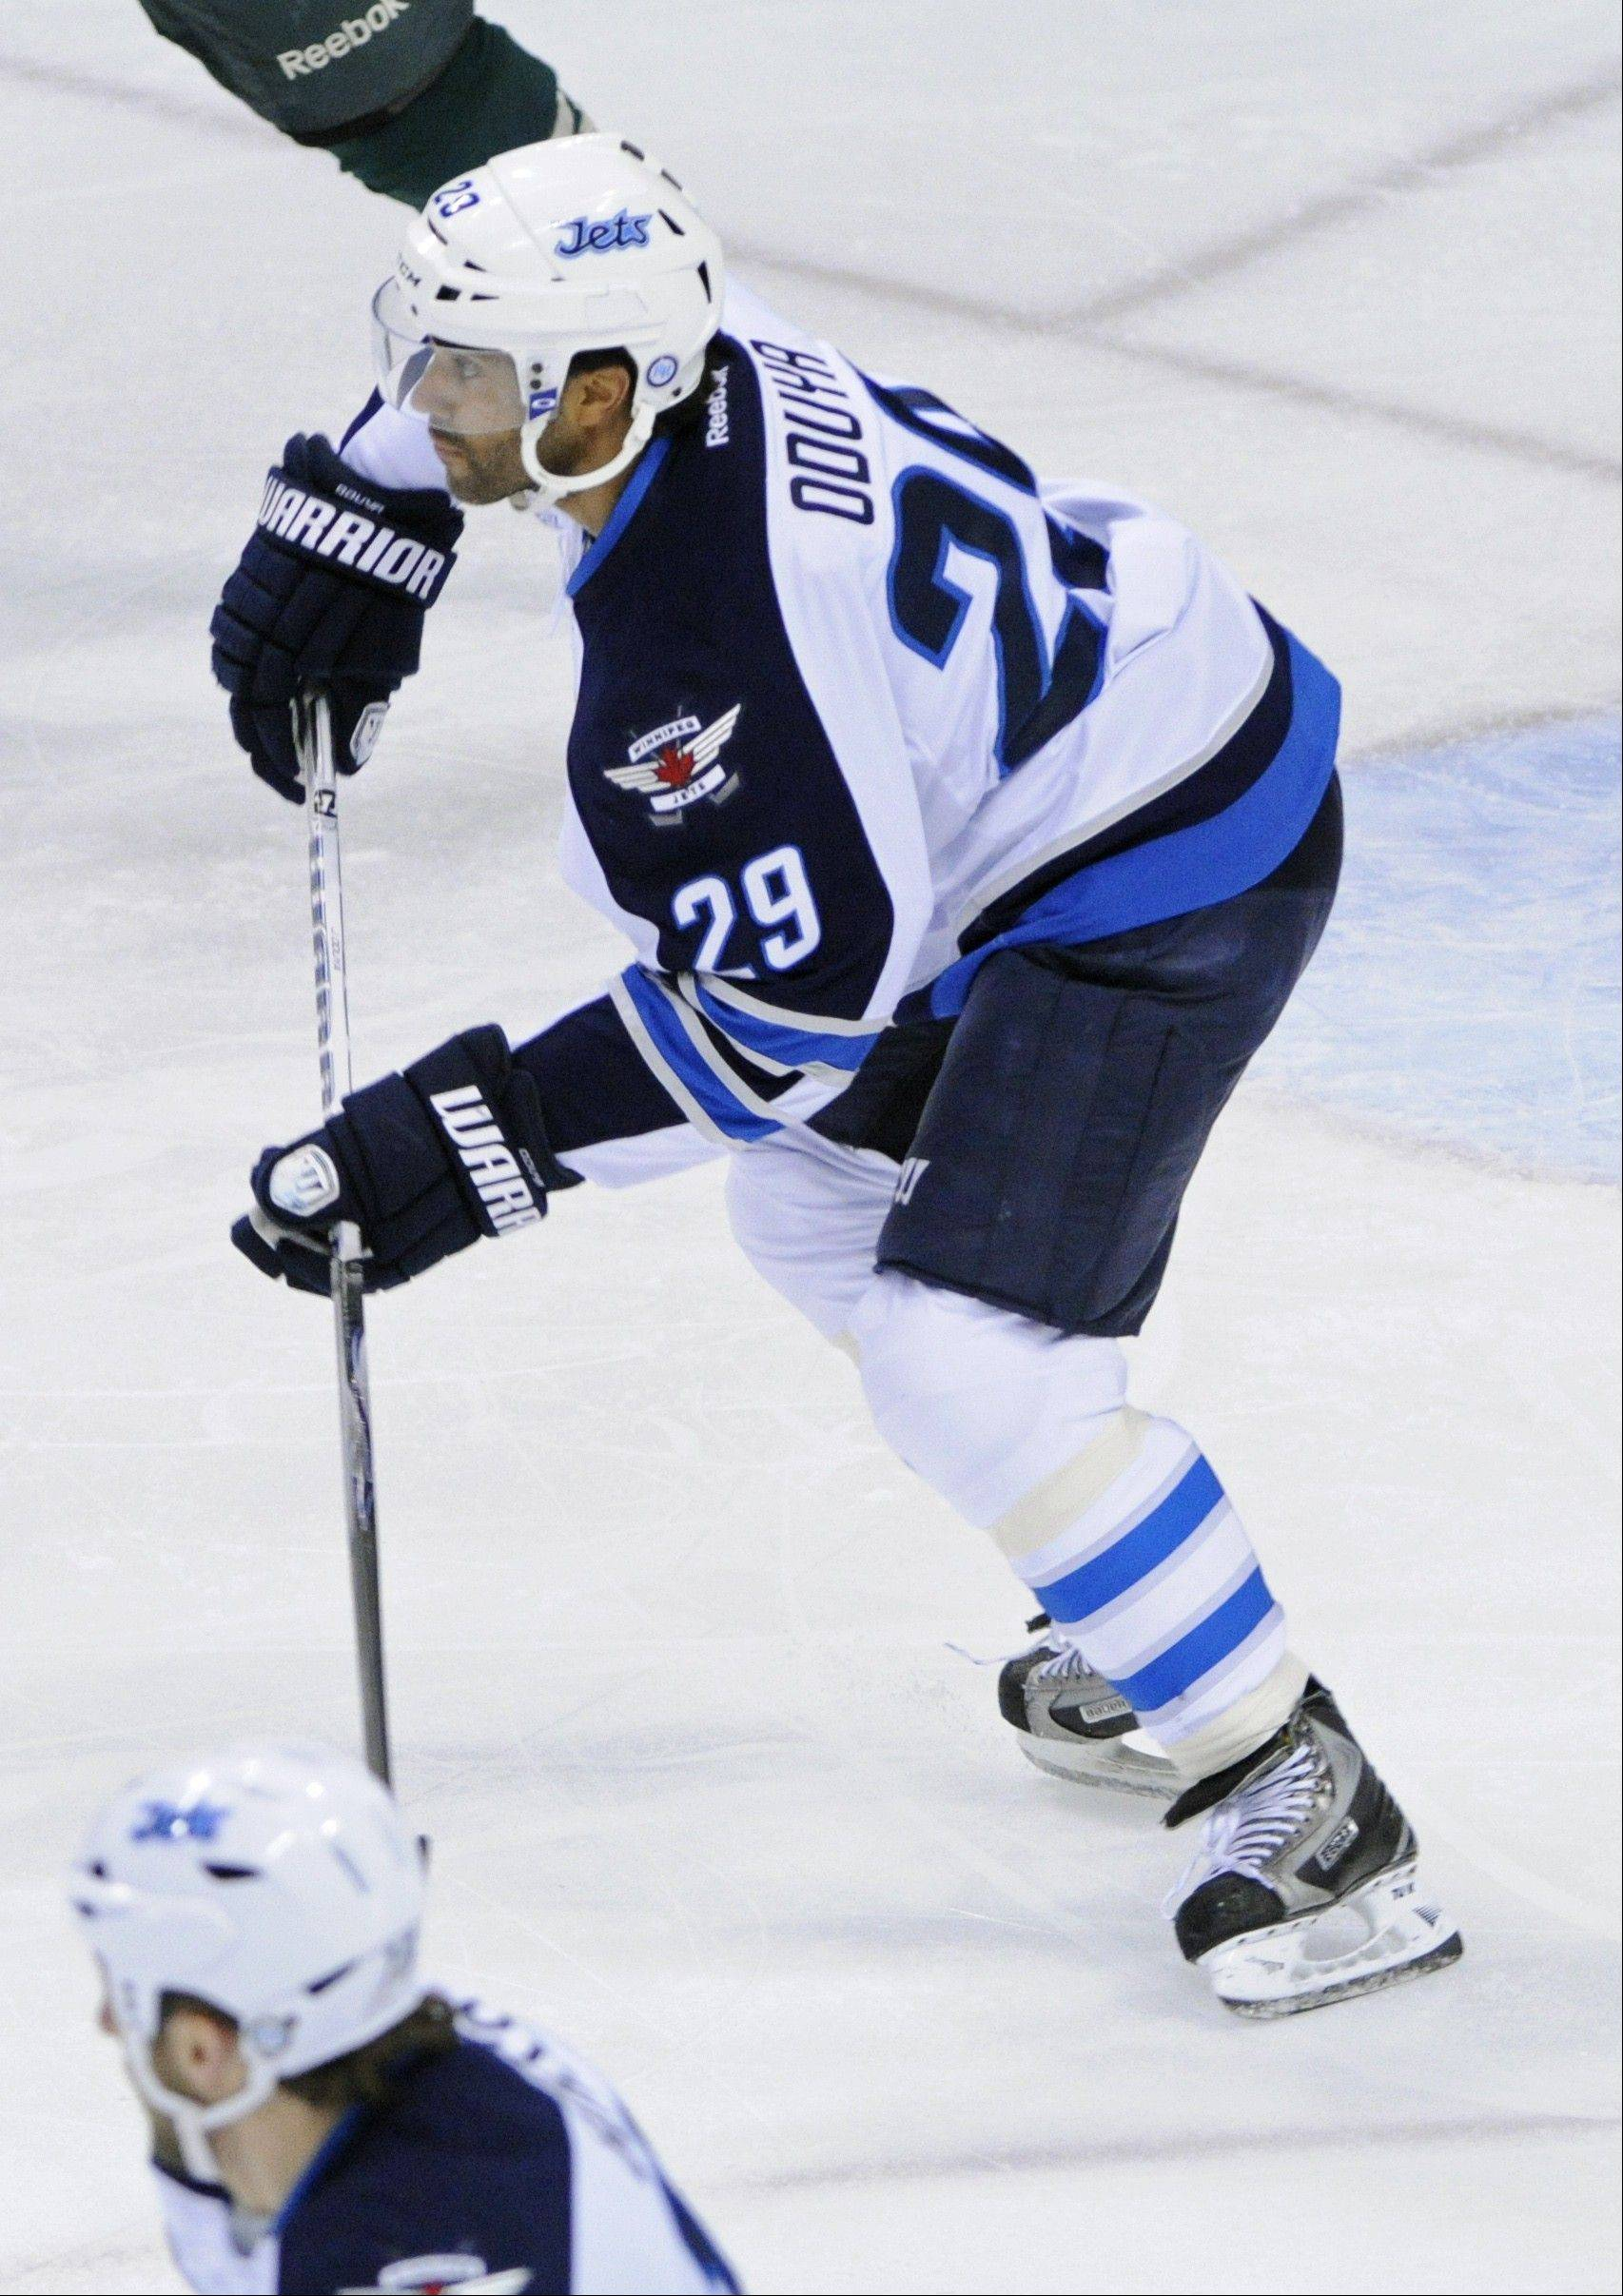 Winnipeg Jets' Johnny Oduya, a defenseman from Sweden, will join the Blackhawks after they acquired him in a trade for draft picks Monday.